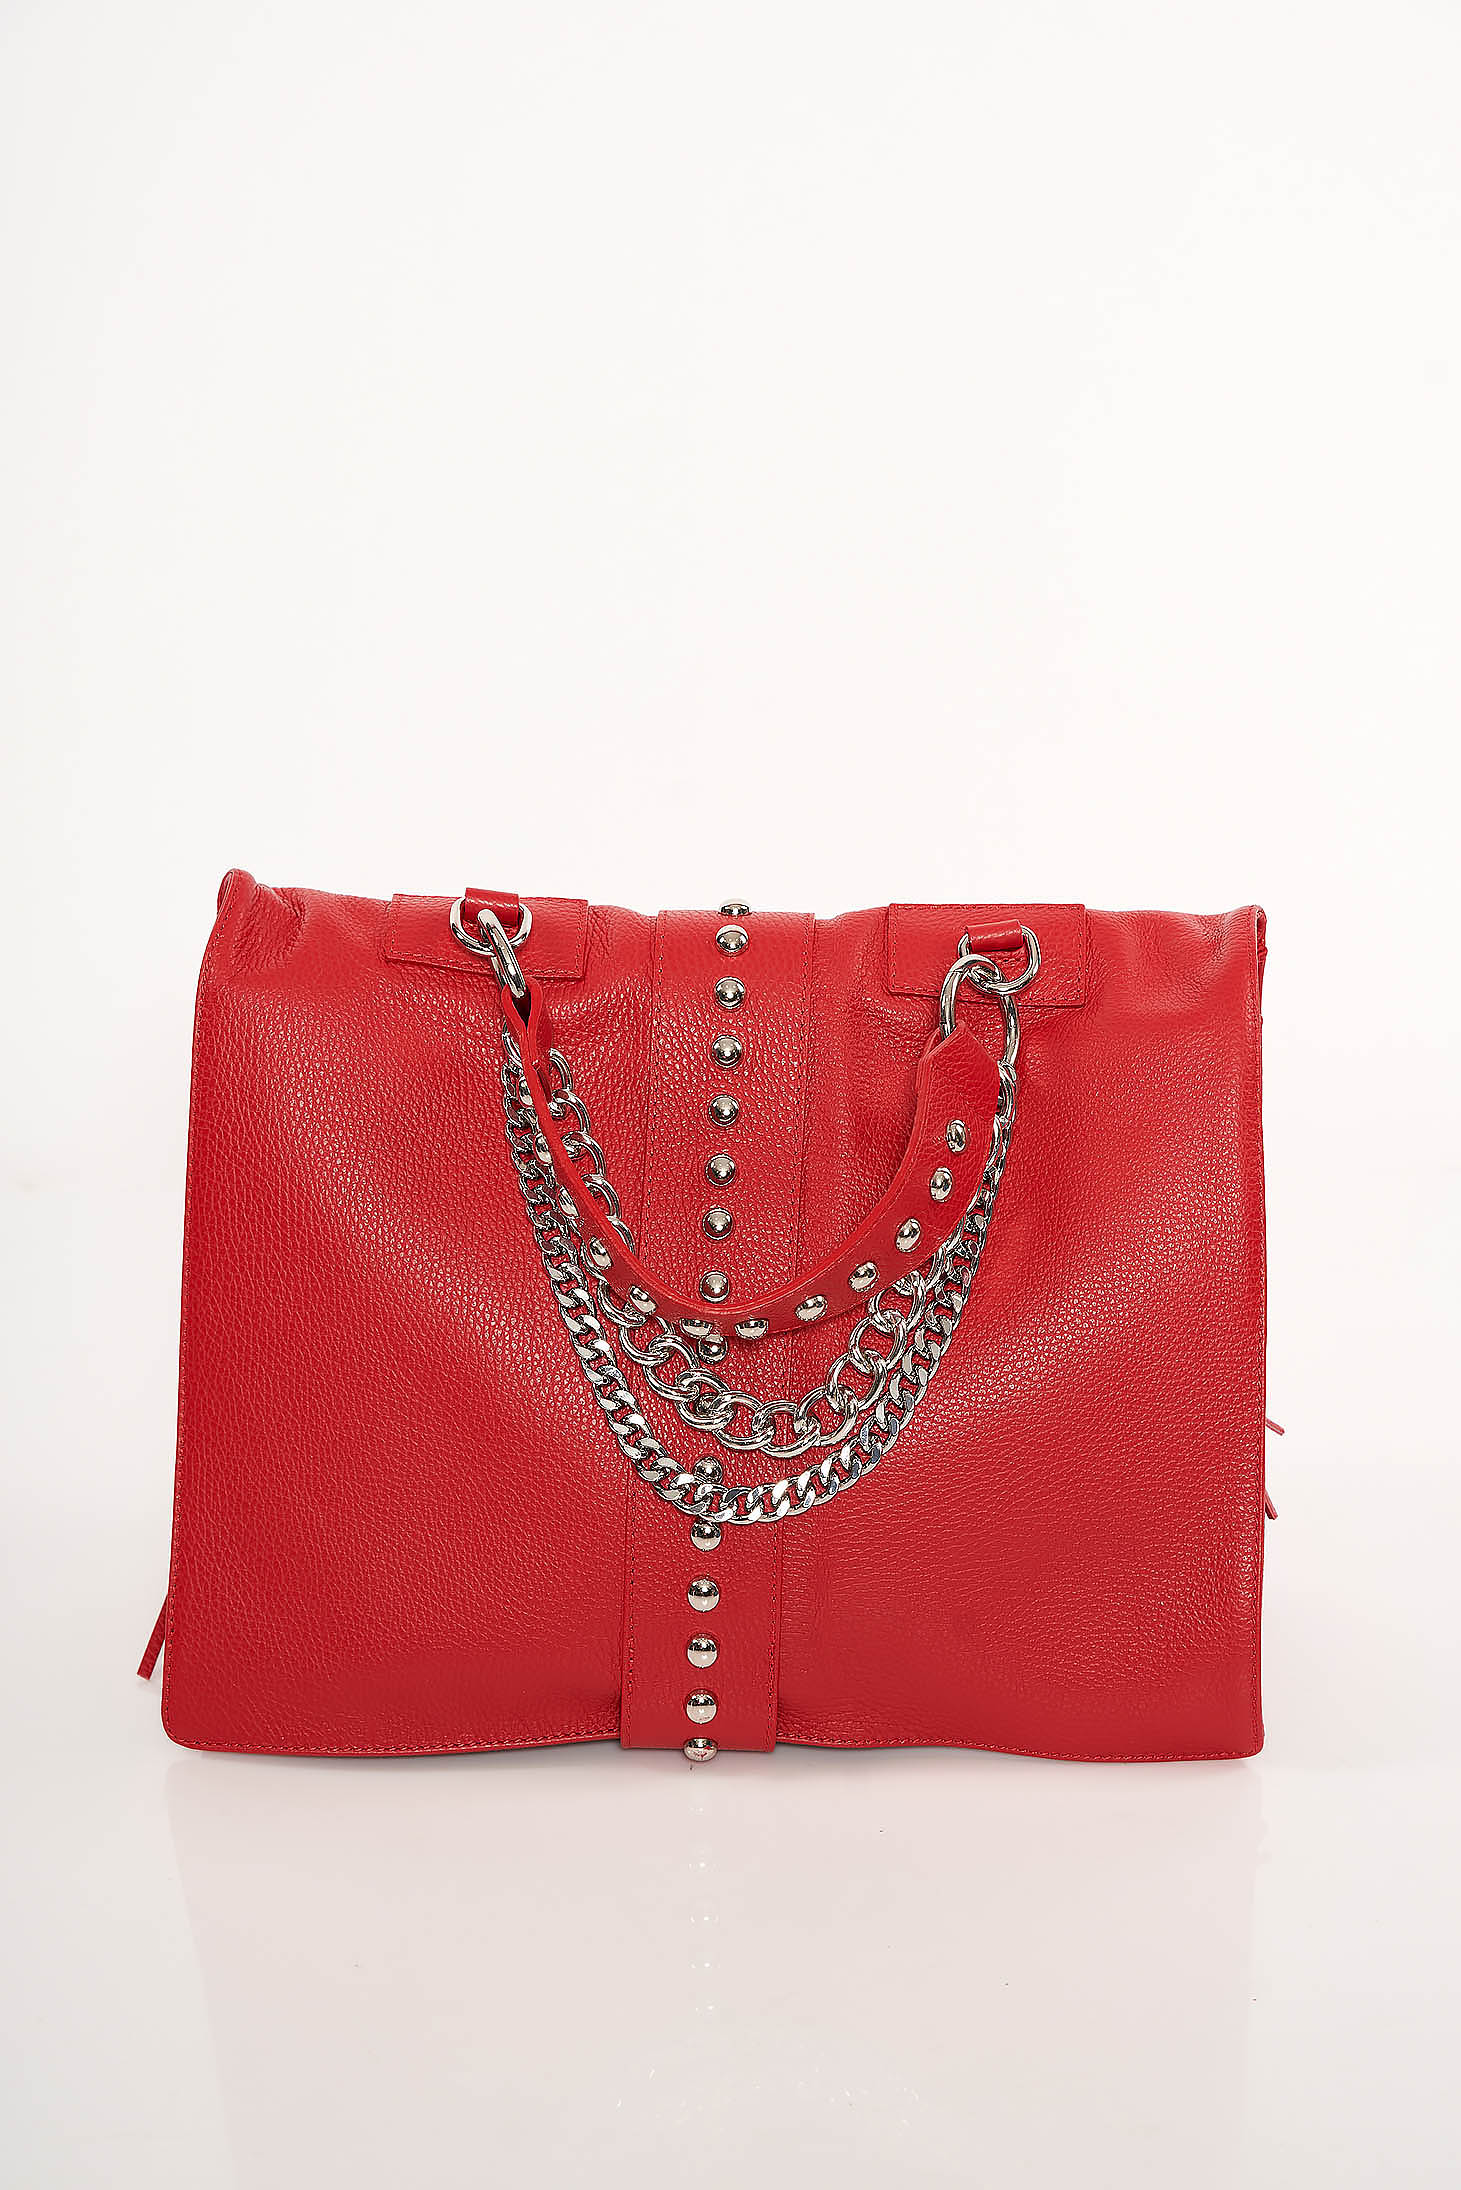 Red bag casual with metallic spikes